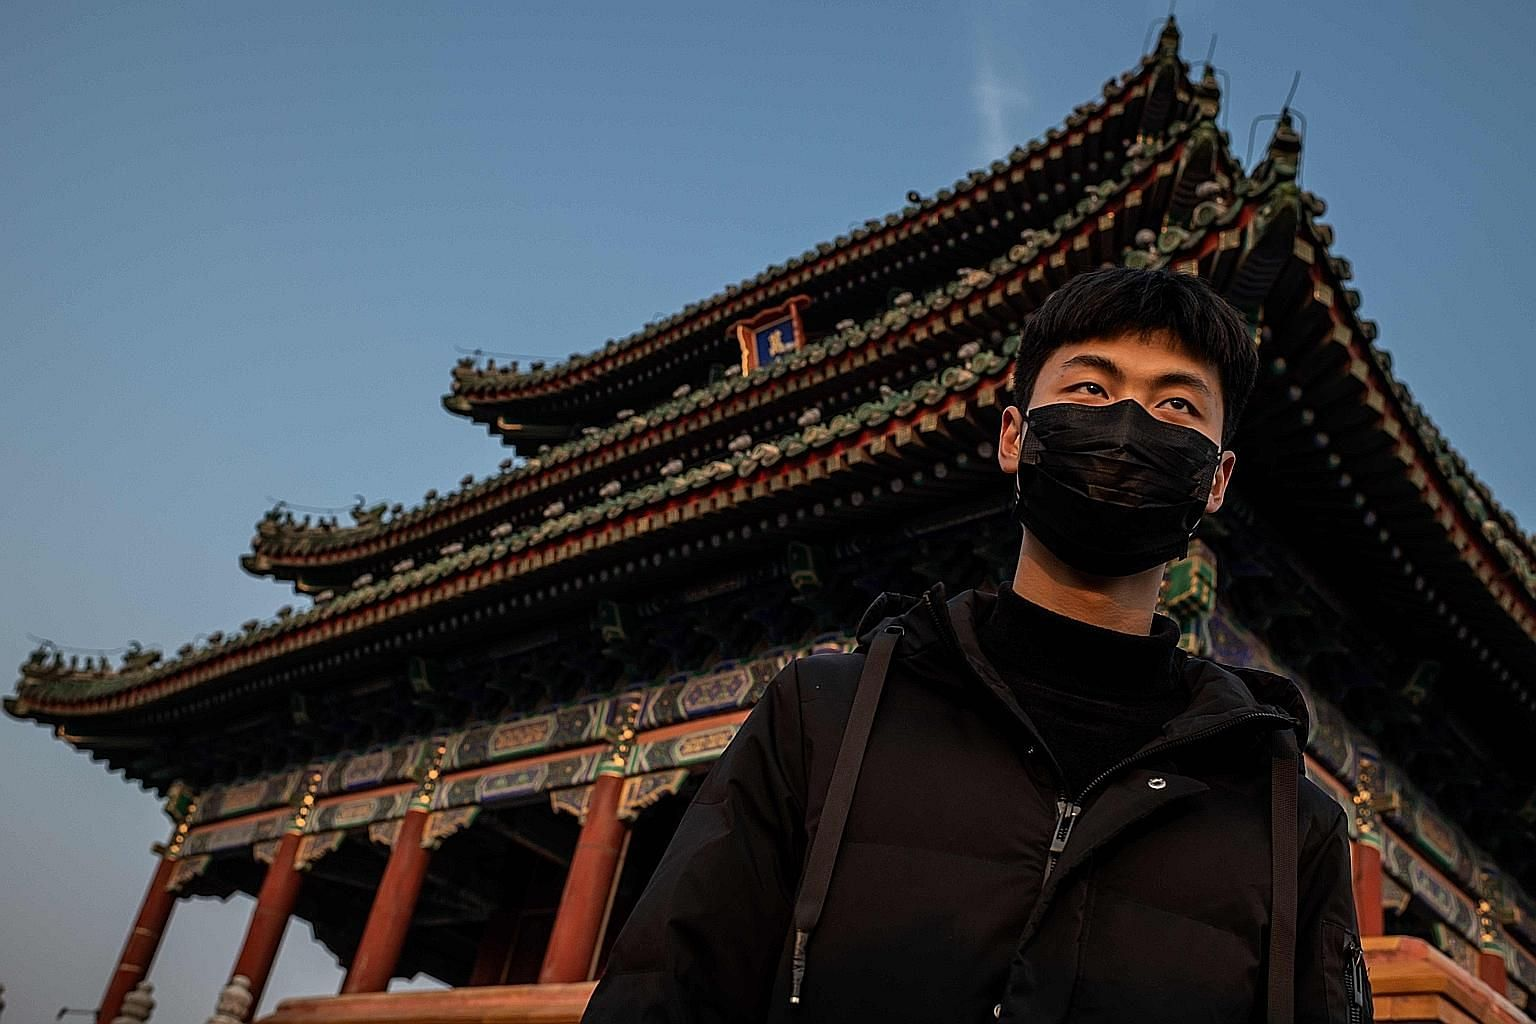 A man wearing a protective mask at Jingshan park in Beijing on Jan 25, amid the coronavirus epidemic. Critics have blamed the contagion on a lack of transparency, a slow start to quarantining suspected carriers and officials initially playing down, i